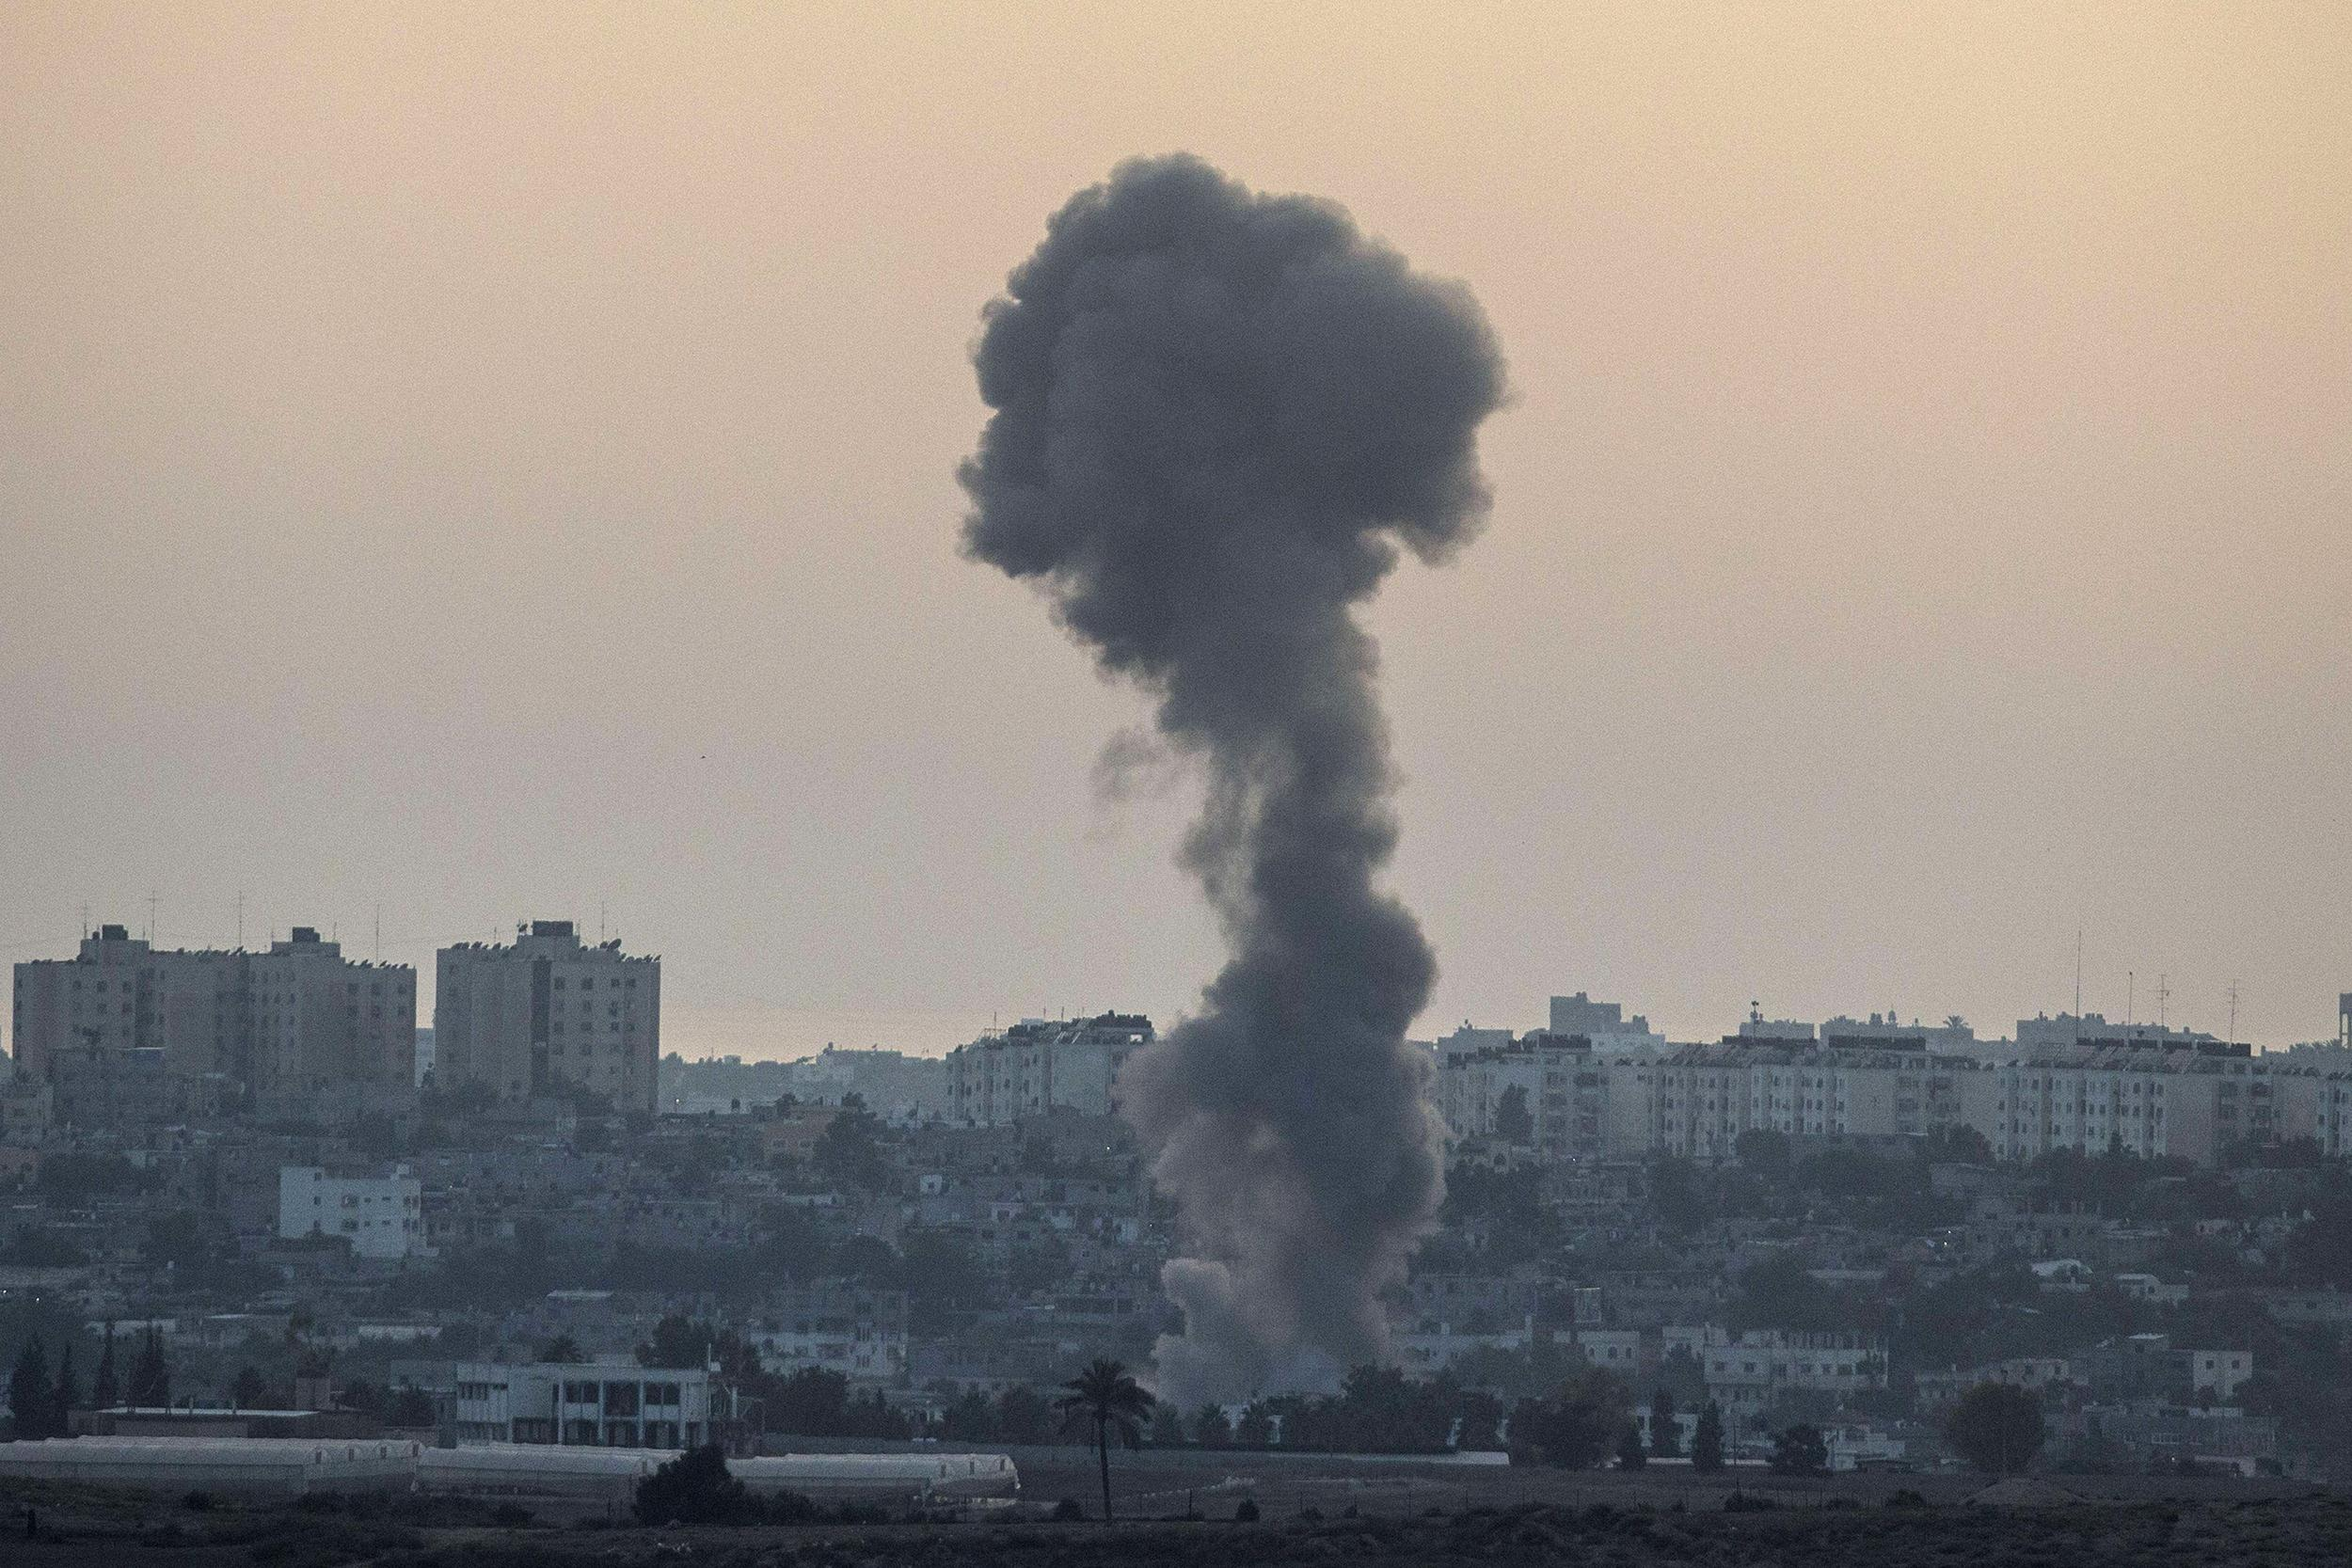 Image: Smoke billowing from buildings following an Israeli air strike in Gaza City